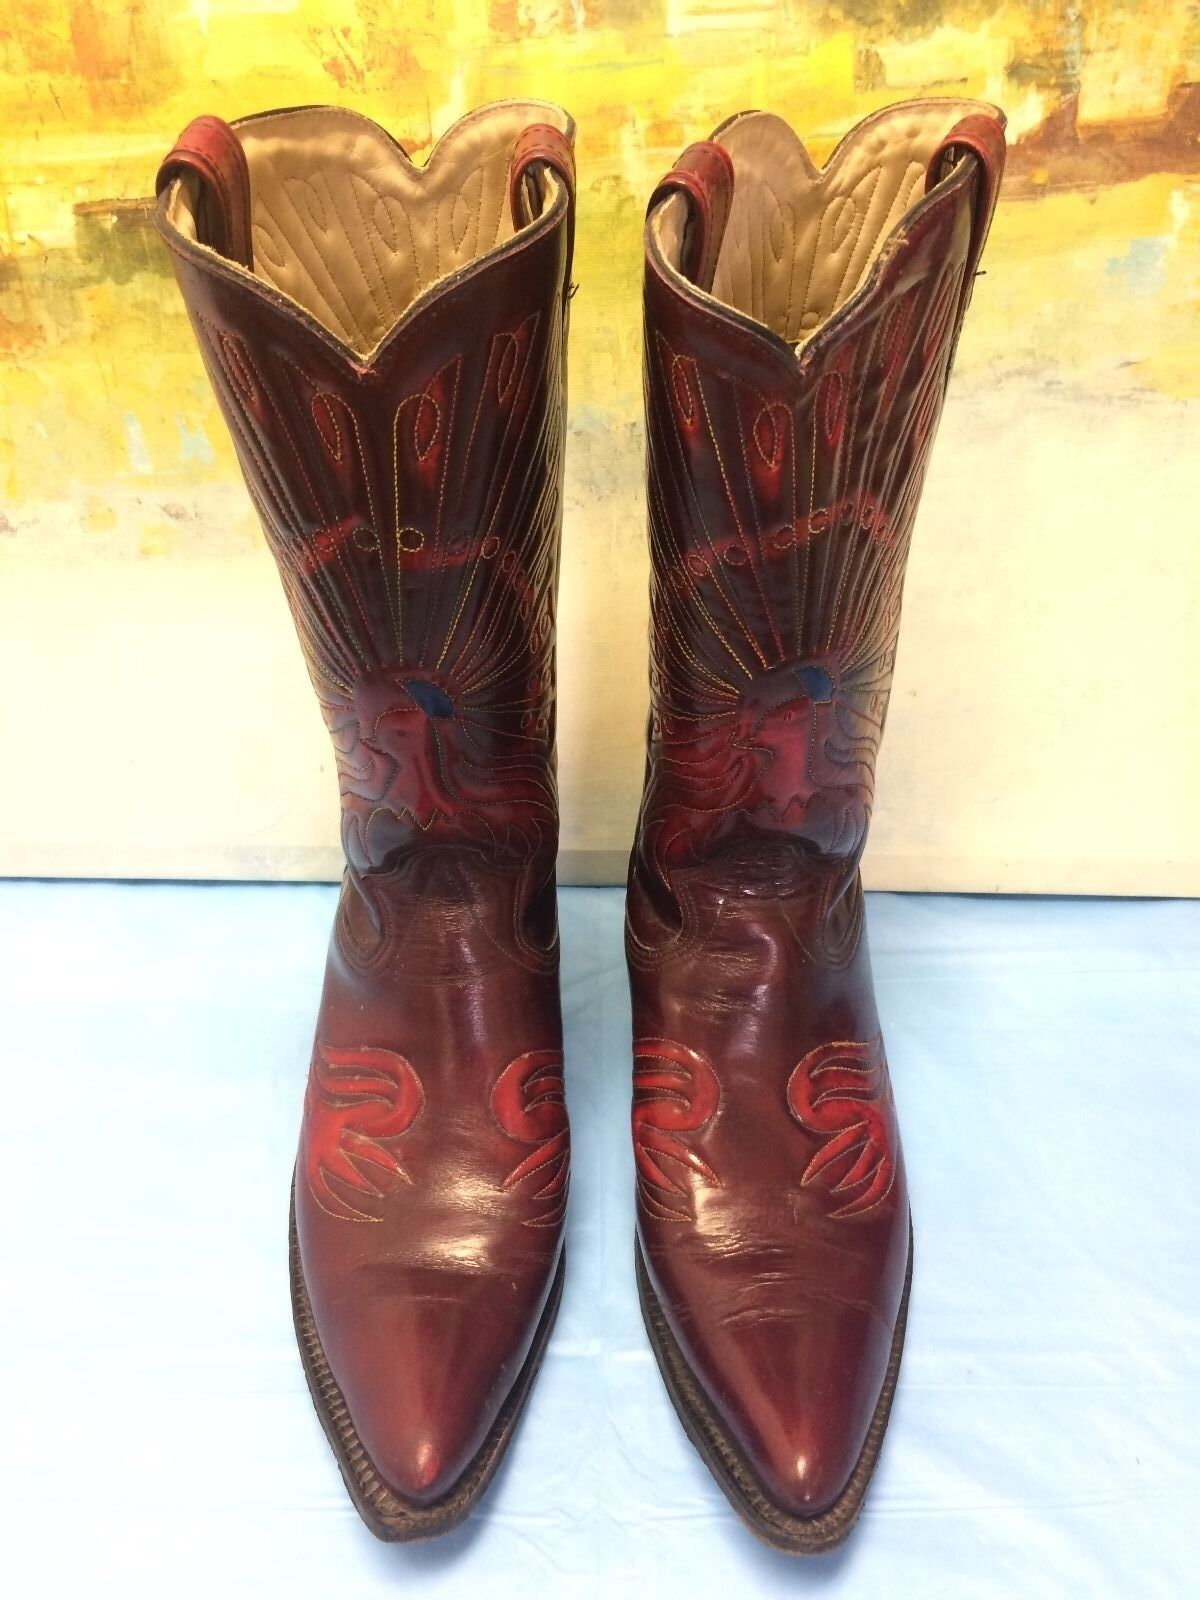 SEARS MENS LEATHER CHERRY BOOTS SIZE 10 D